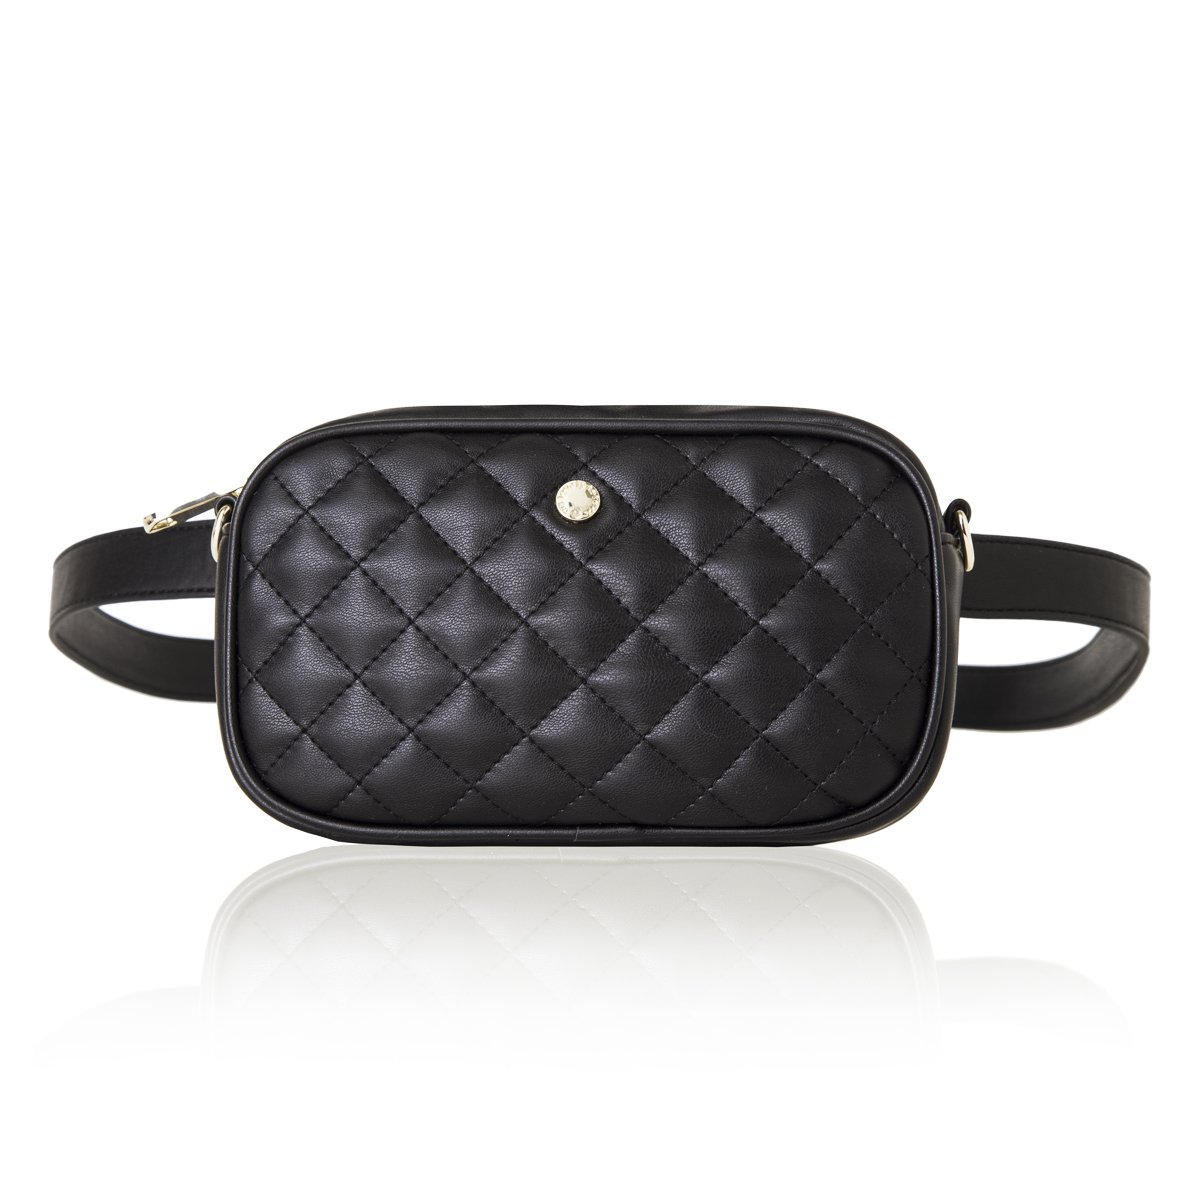 The Lovely Tote Co. Women's 2-way Fanny Pack Small Quilting Crossbody Bag (One size, Black (Diamond))